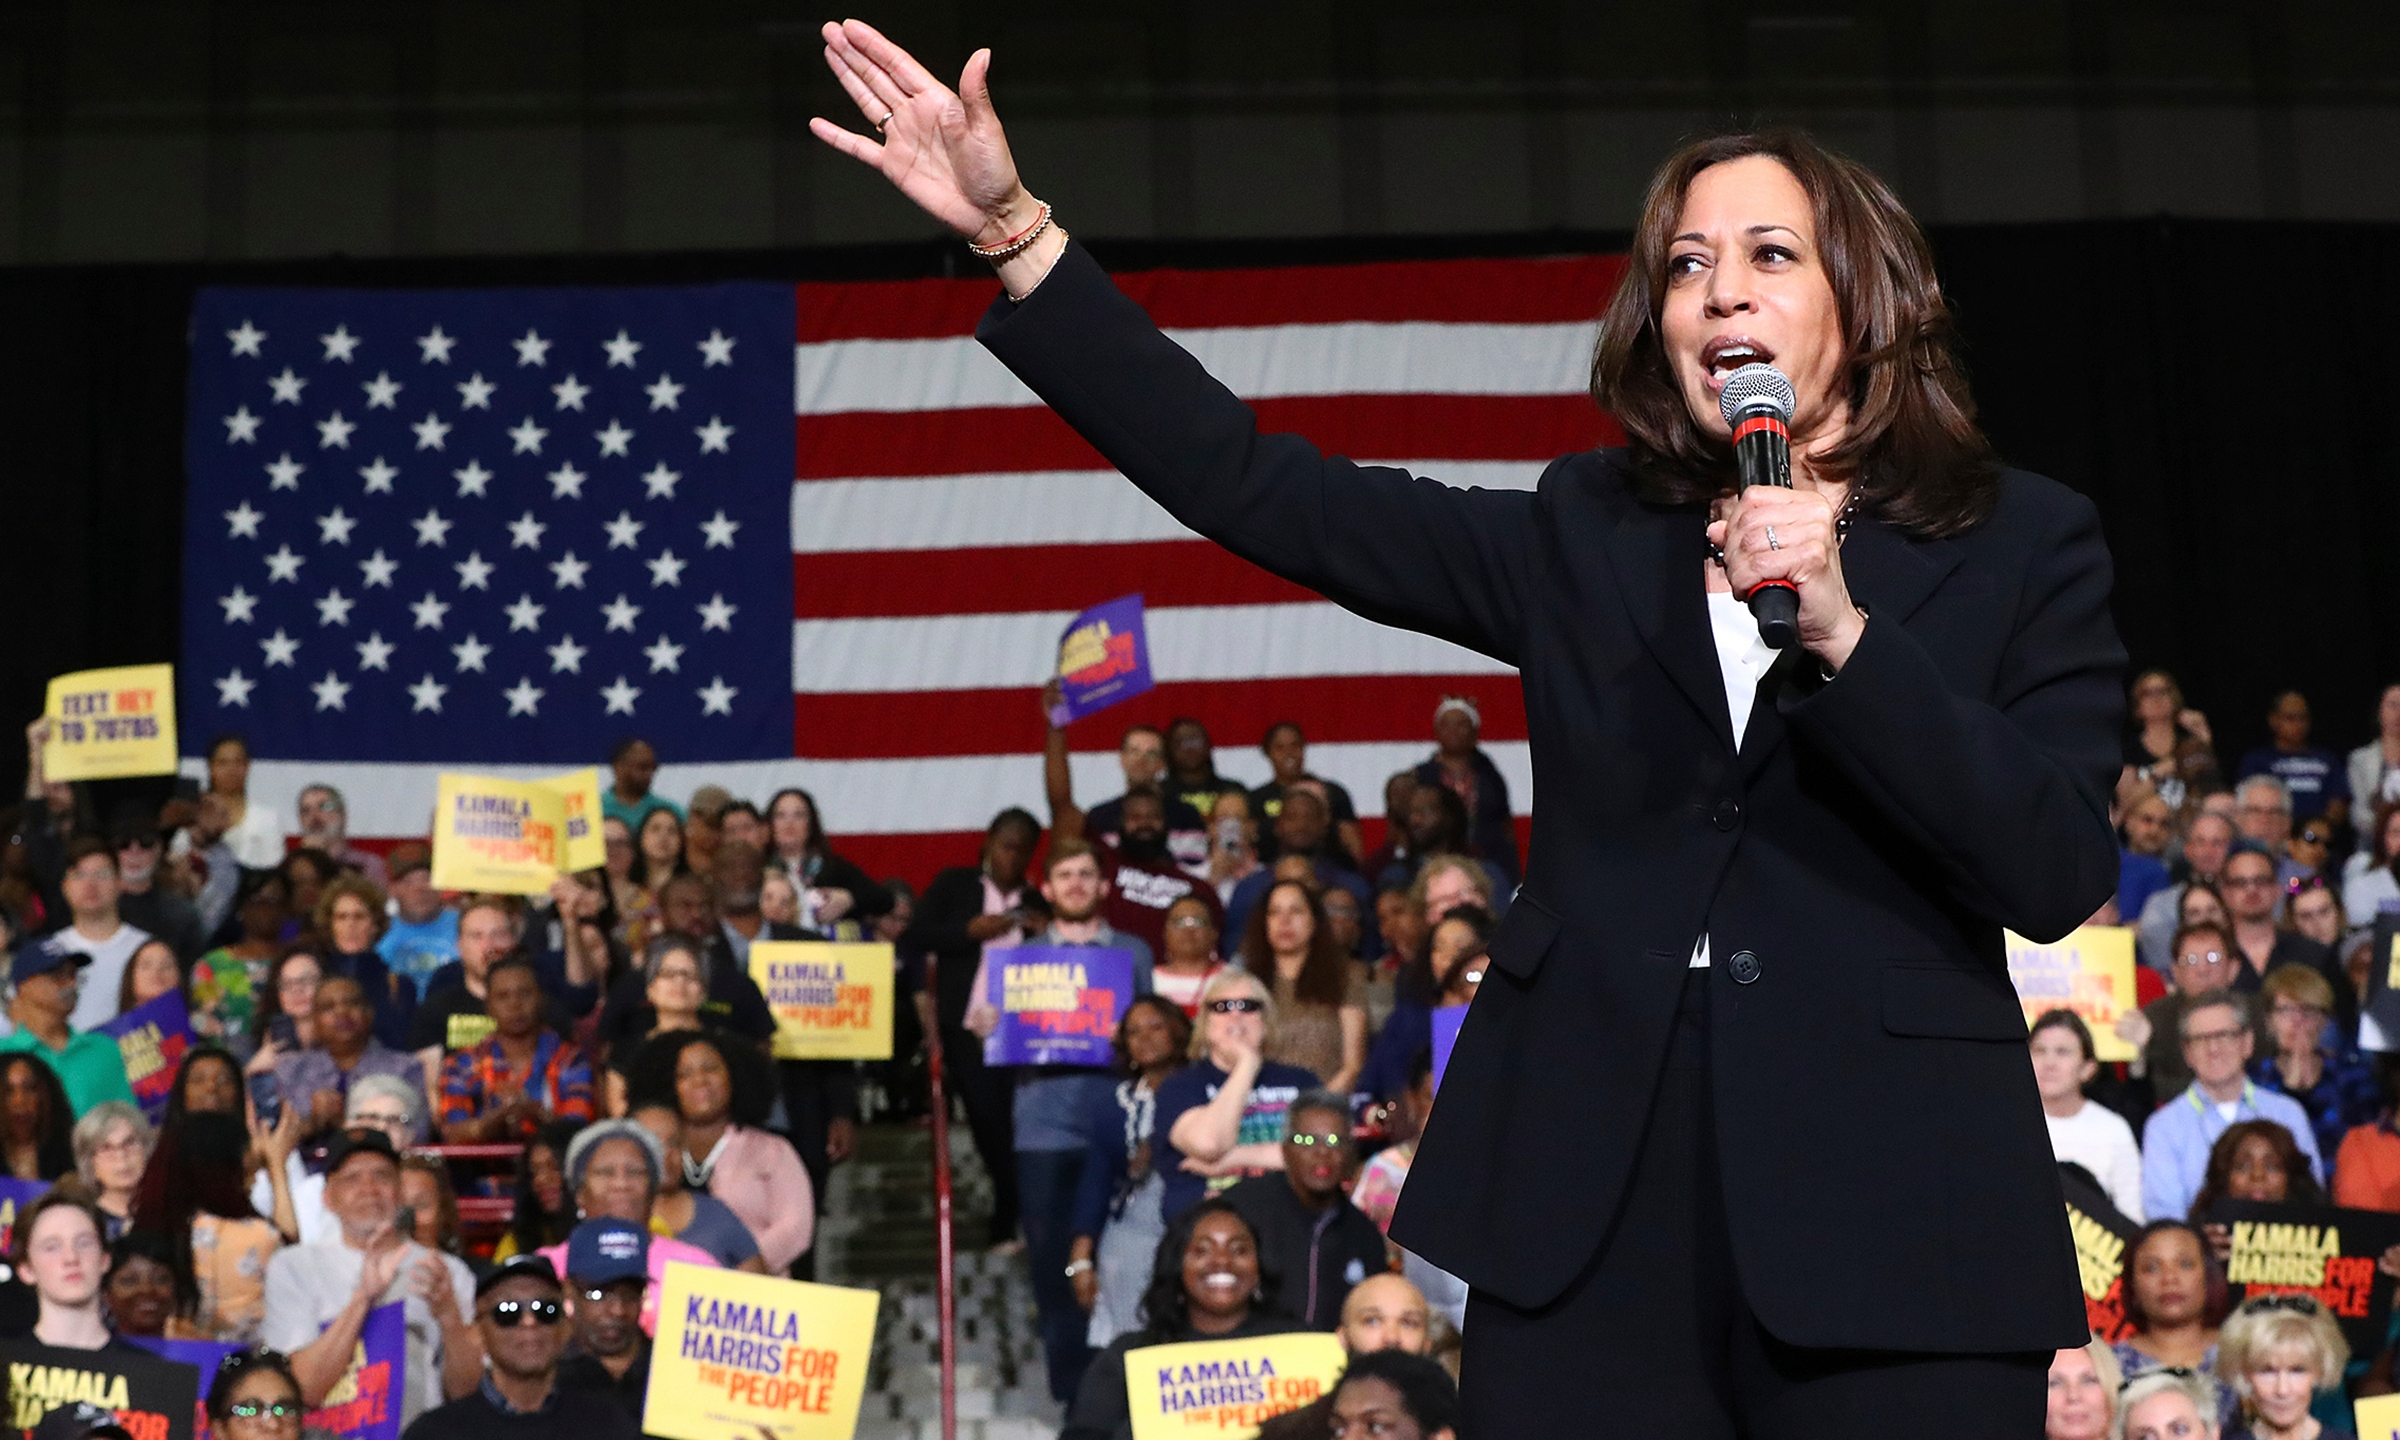 Election_2020_Kamala_Harris_68518-159532.jpg94962978